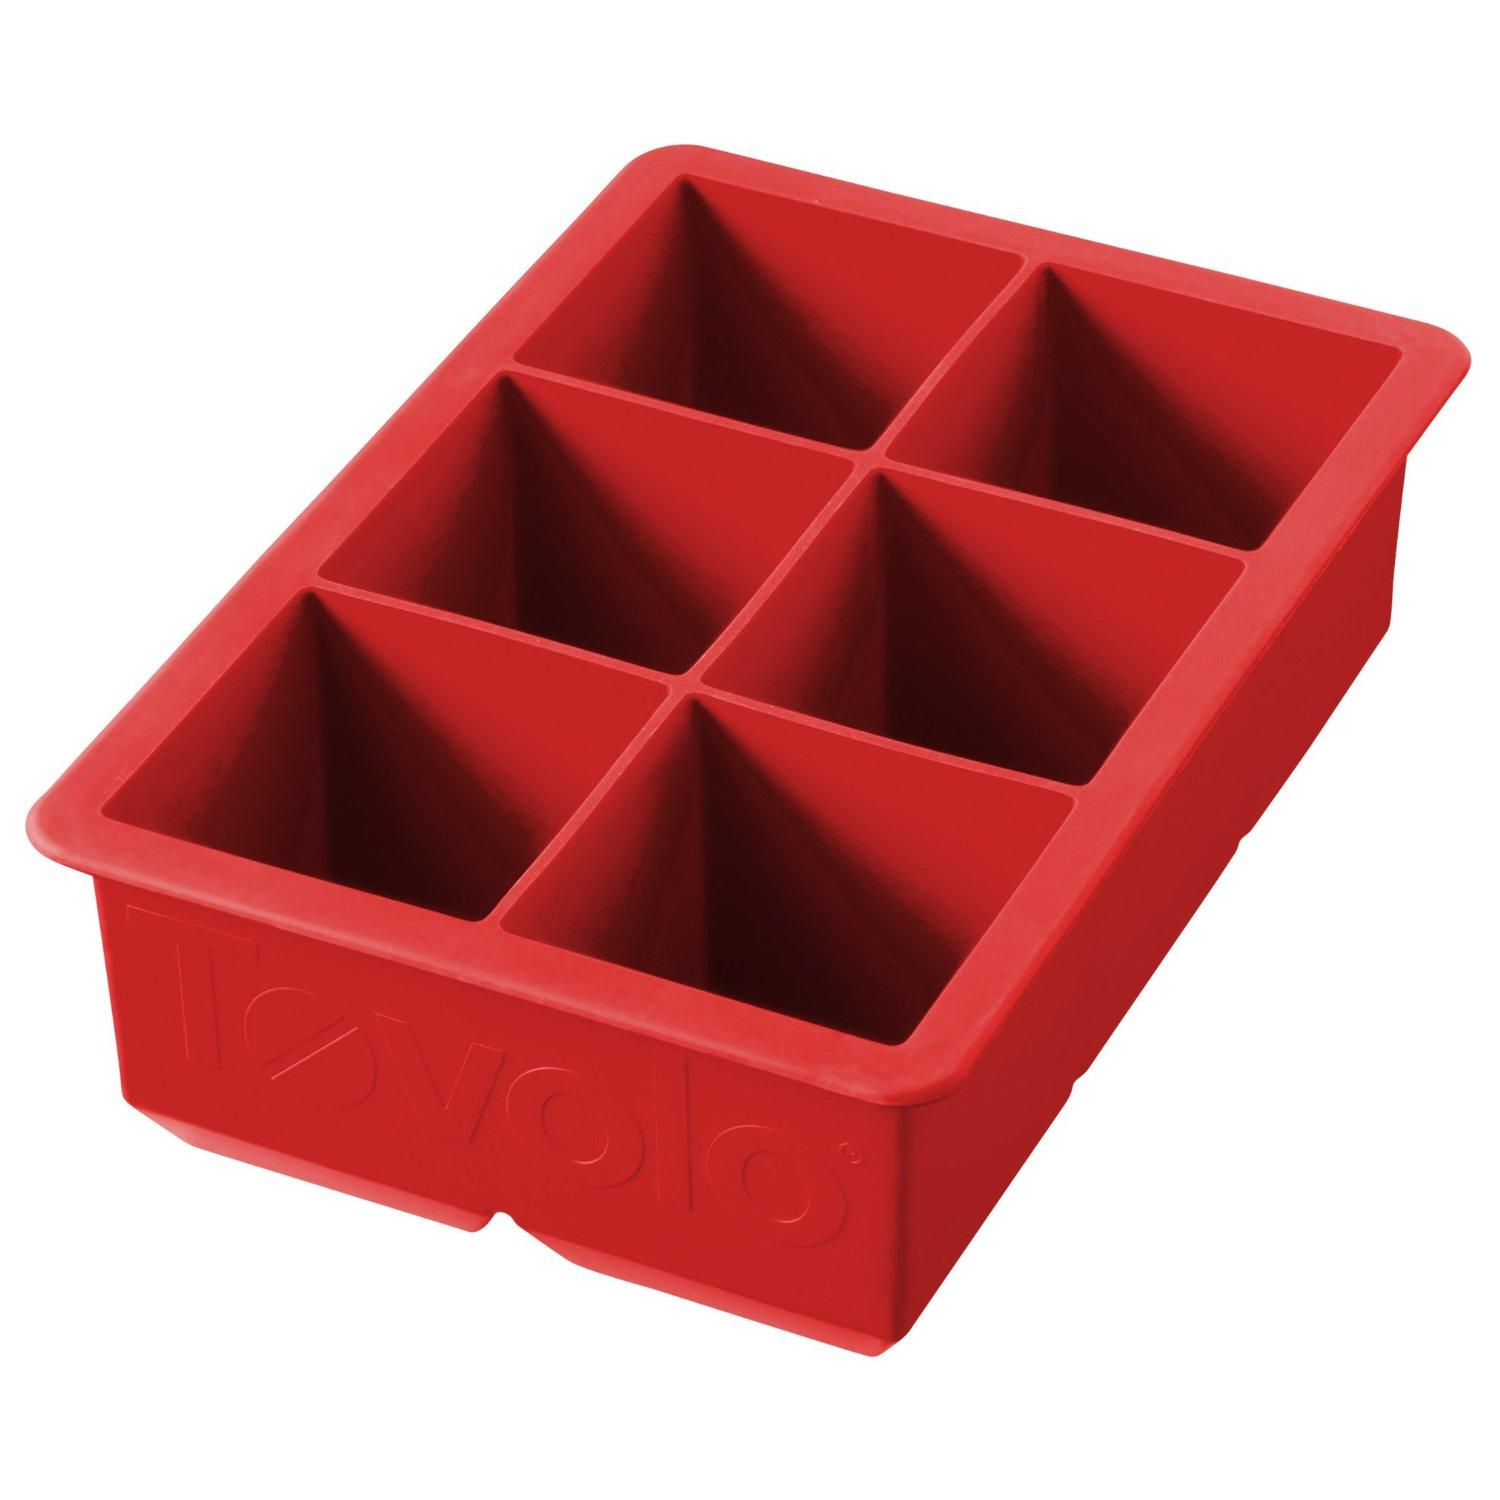 Ice Mold Tray Cube Silicone 6-pocket King Red